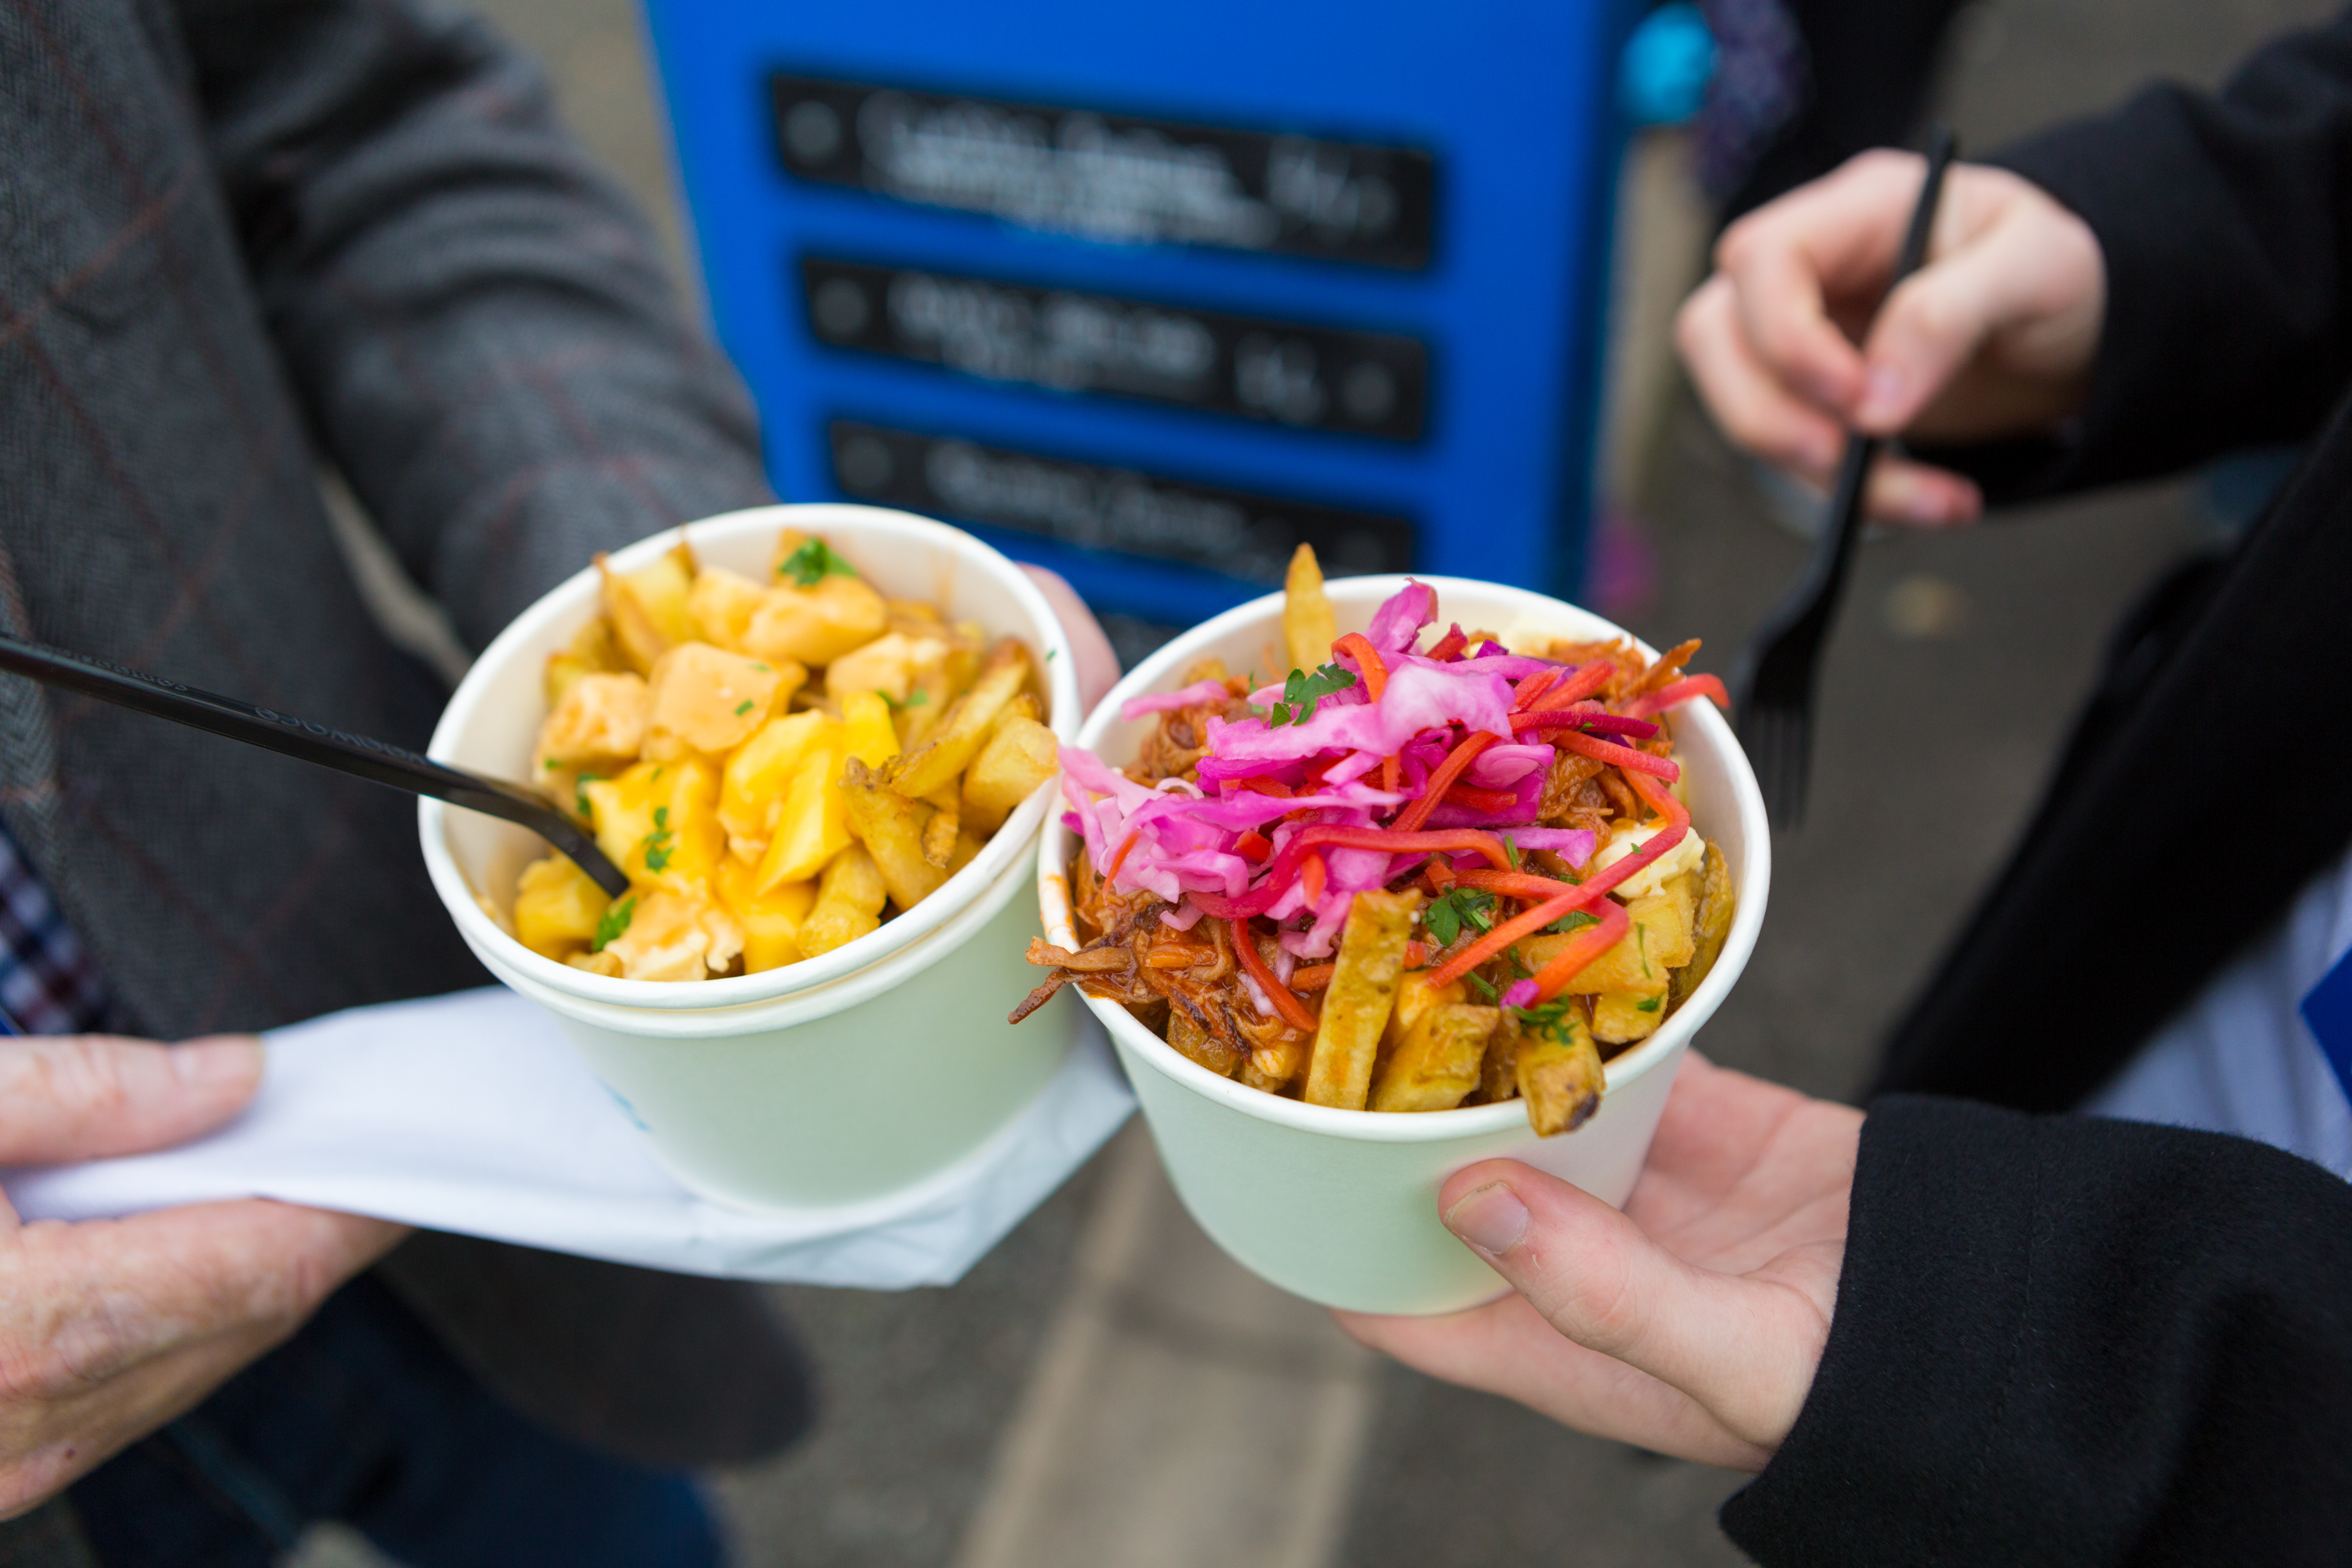 Québec-style poutinerie highlights the use of maple in great tasting food